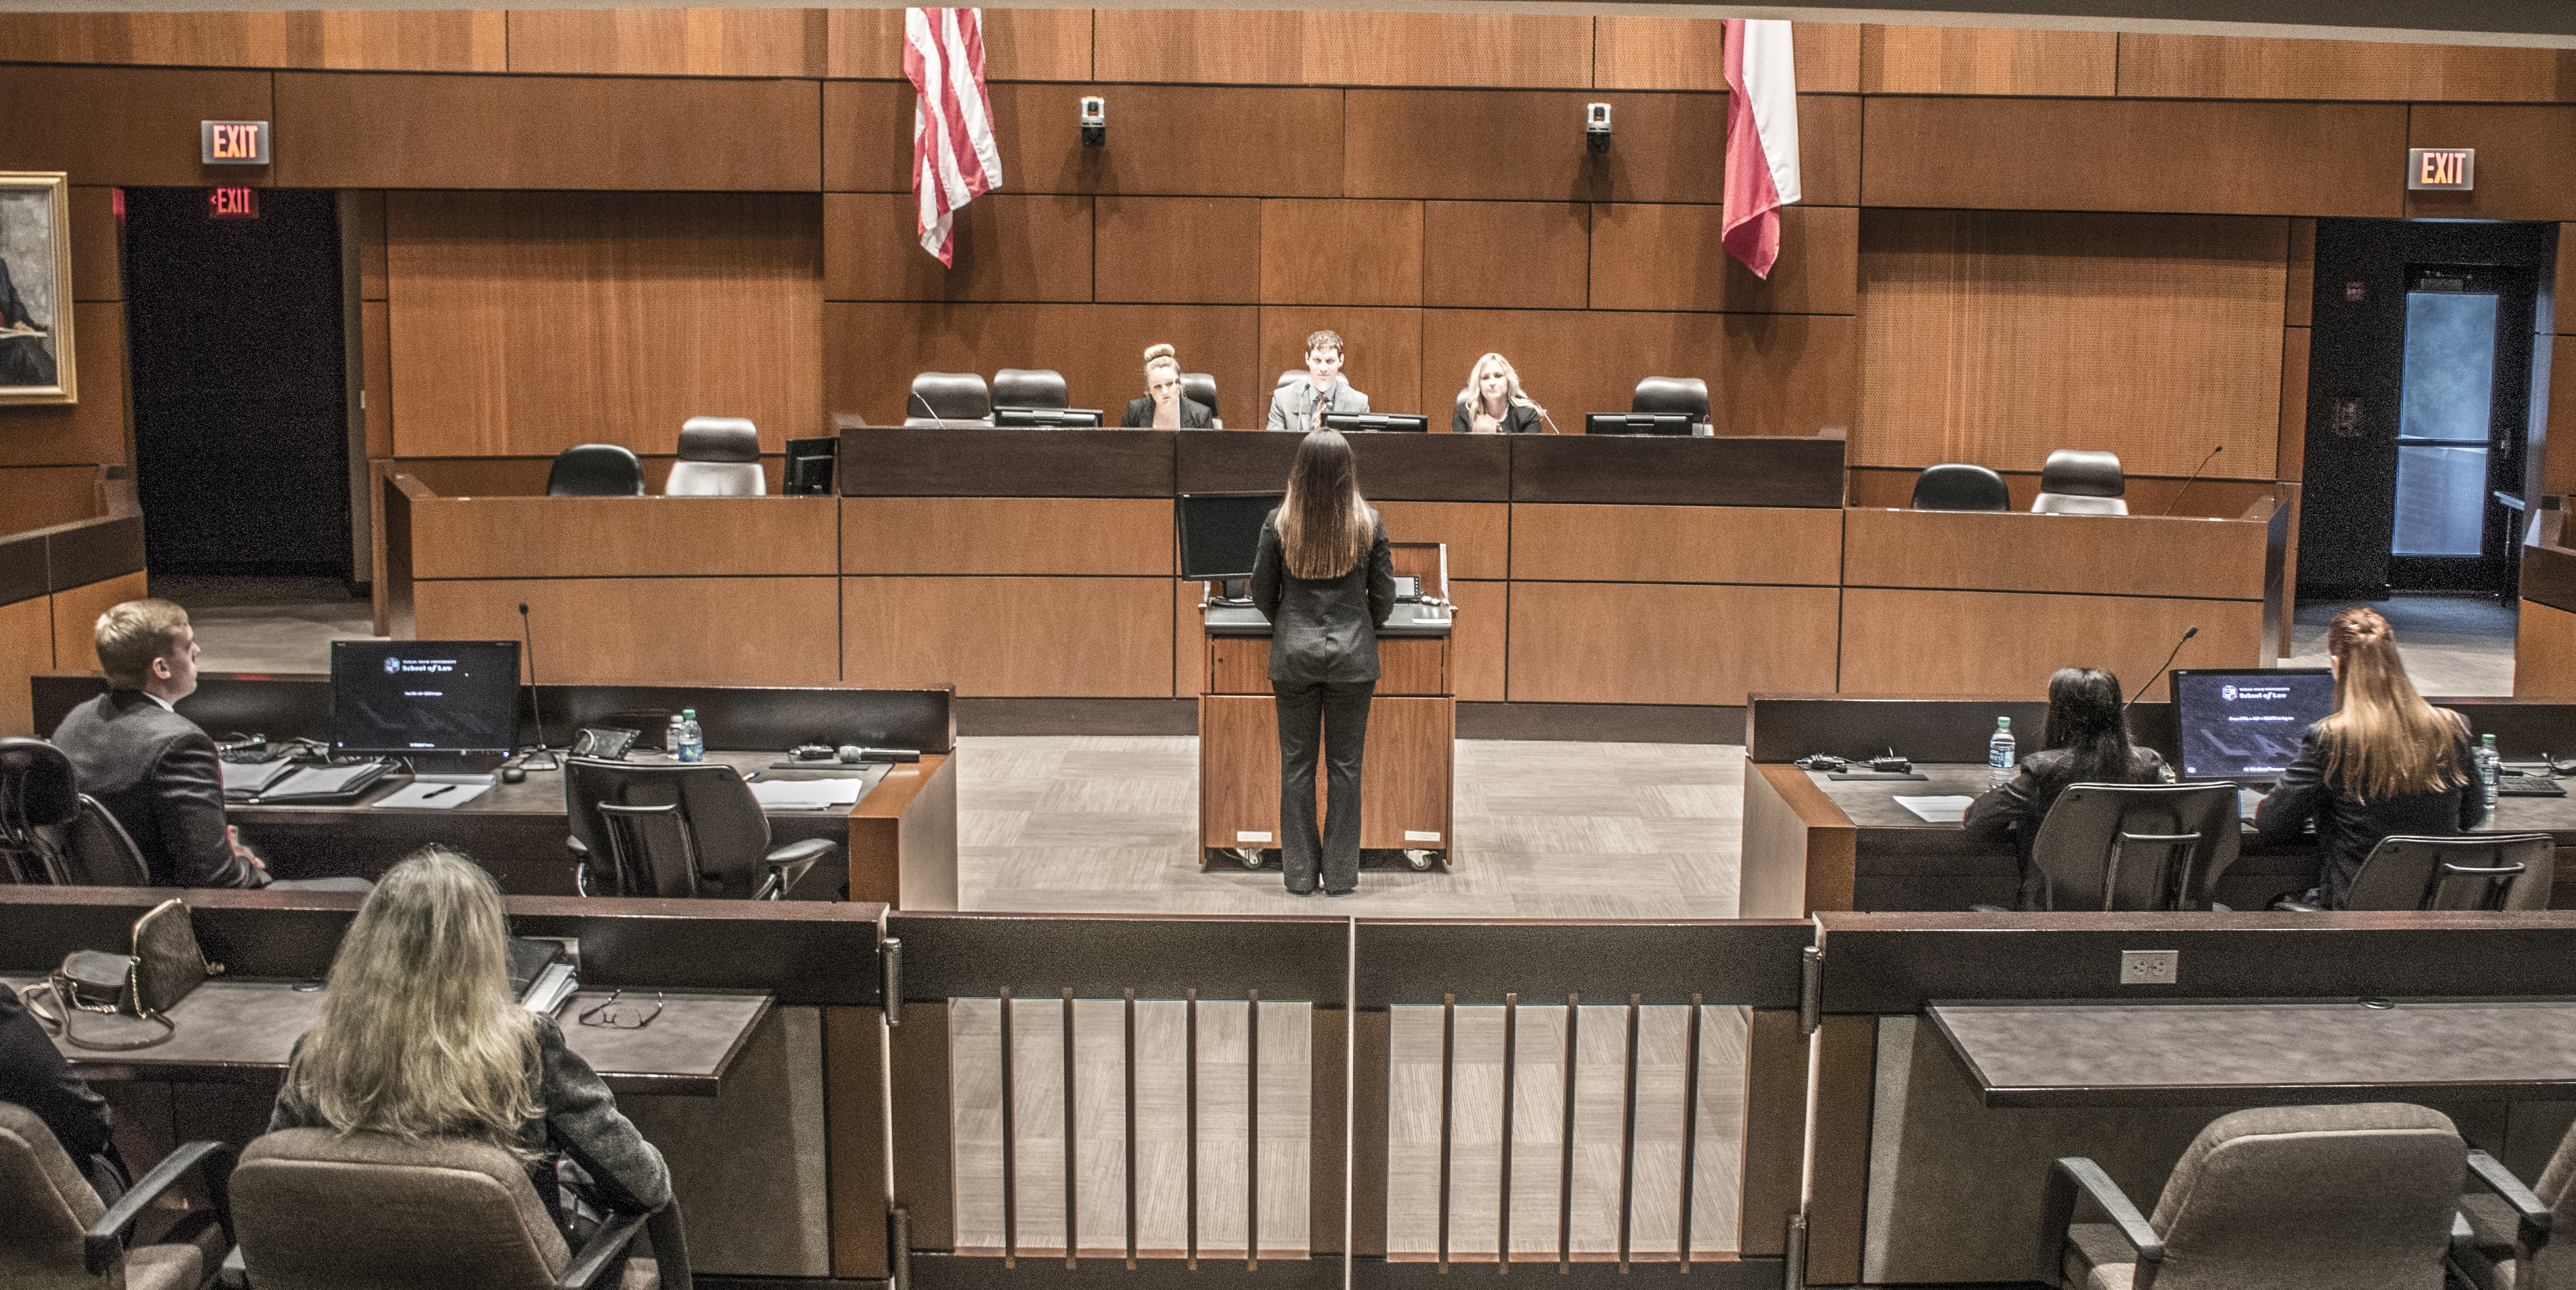 Moot Court students compete in the court-room against teams from across Texas and the US, often in front of practicing attorneys and judges.